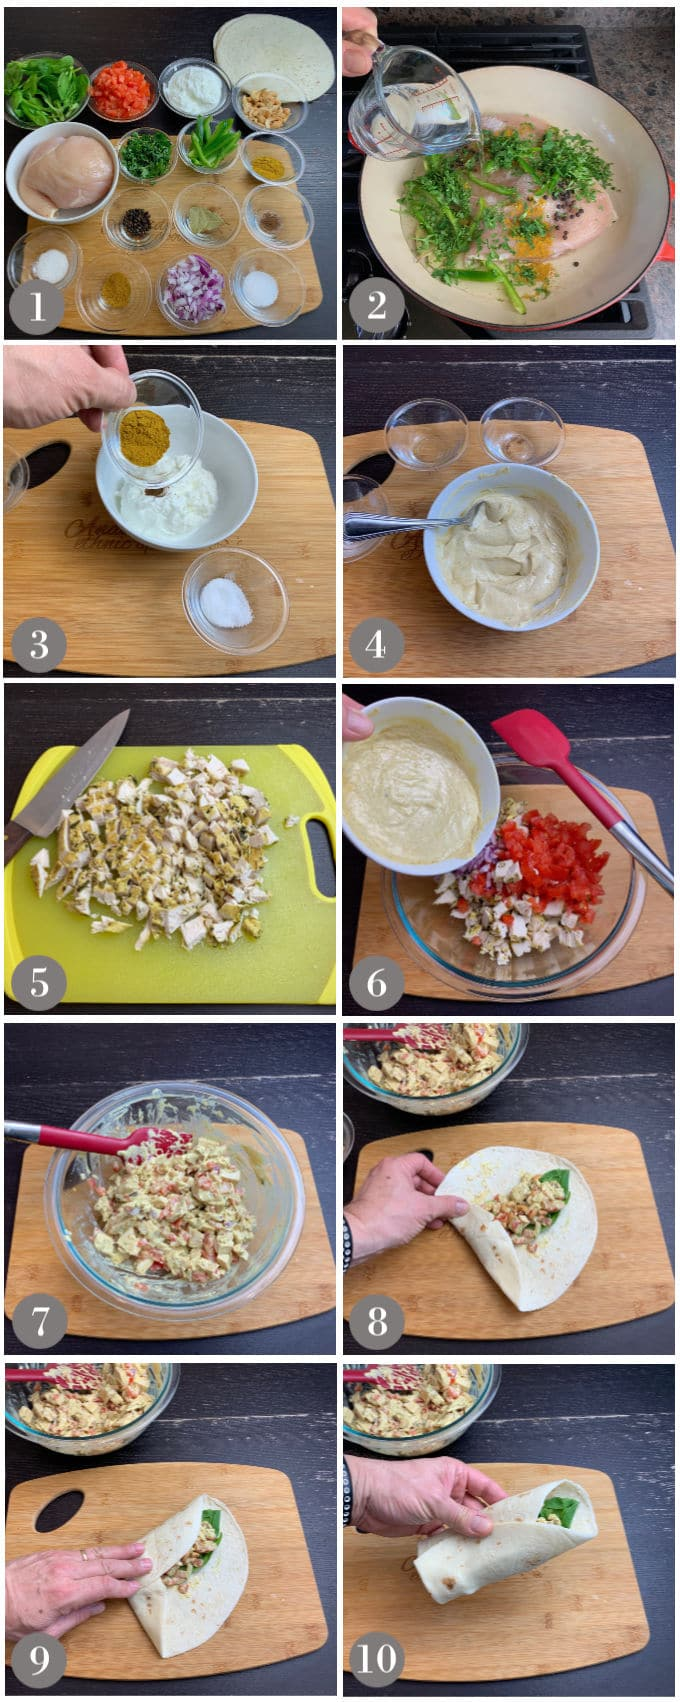 A collage of photos showing the steps to make creamy chicken curry wraps.